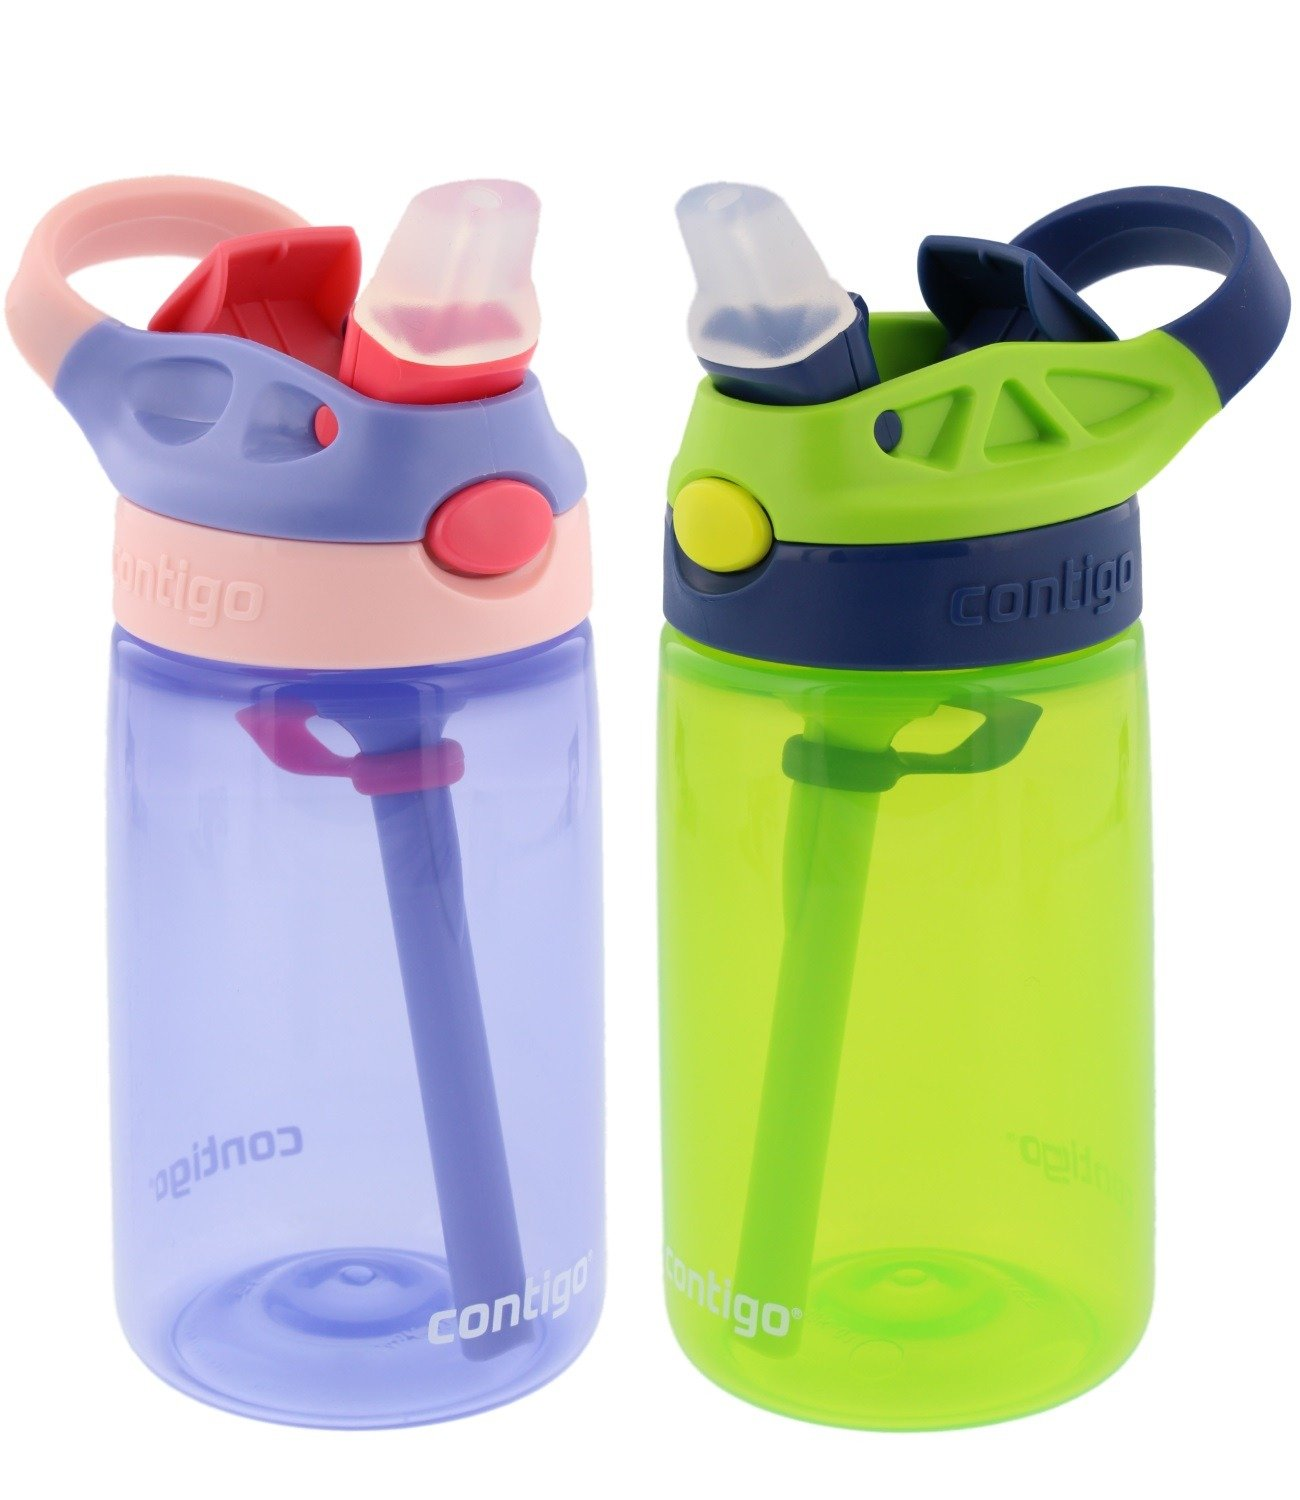 Contigo Kids Water Bottle, Pack of 3, 414 ml